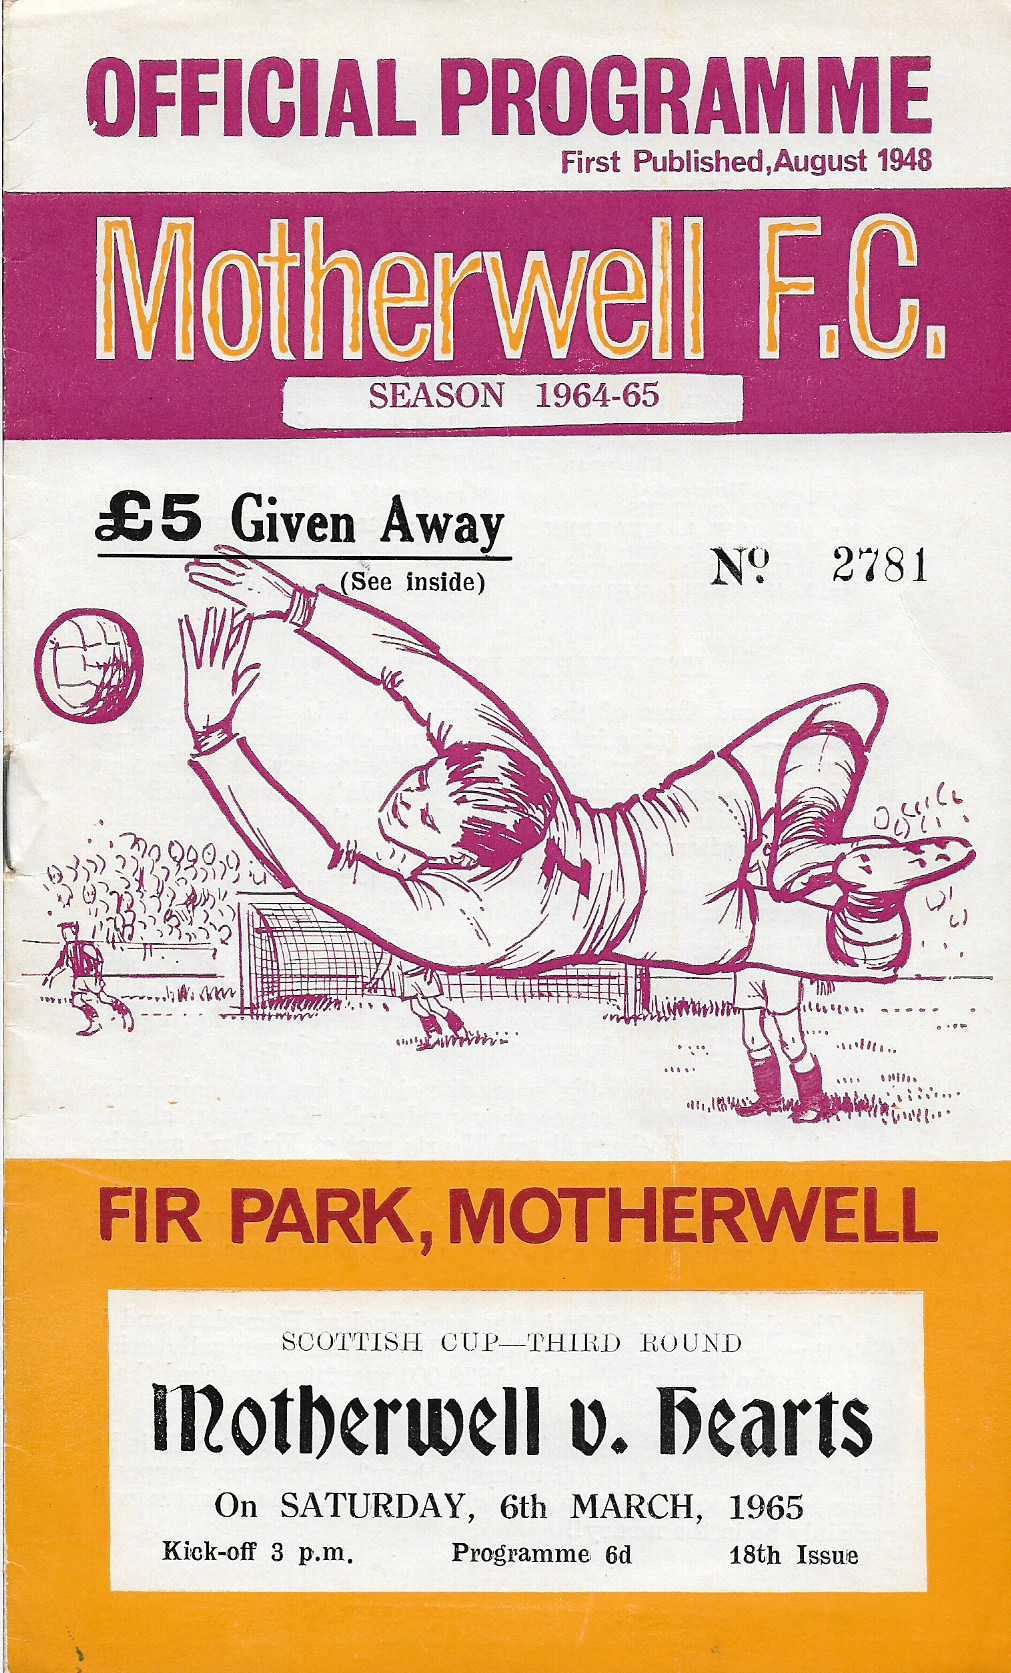 Programme Cover versus Hearts of Midlothian